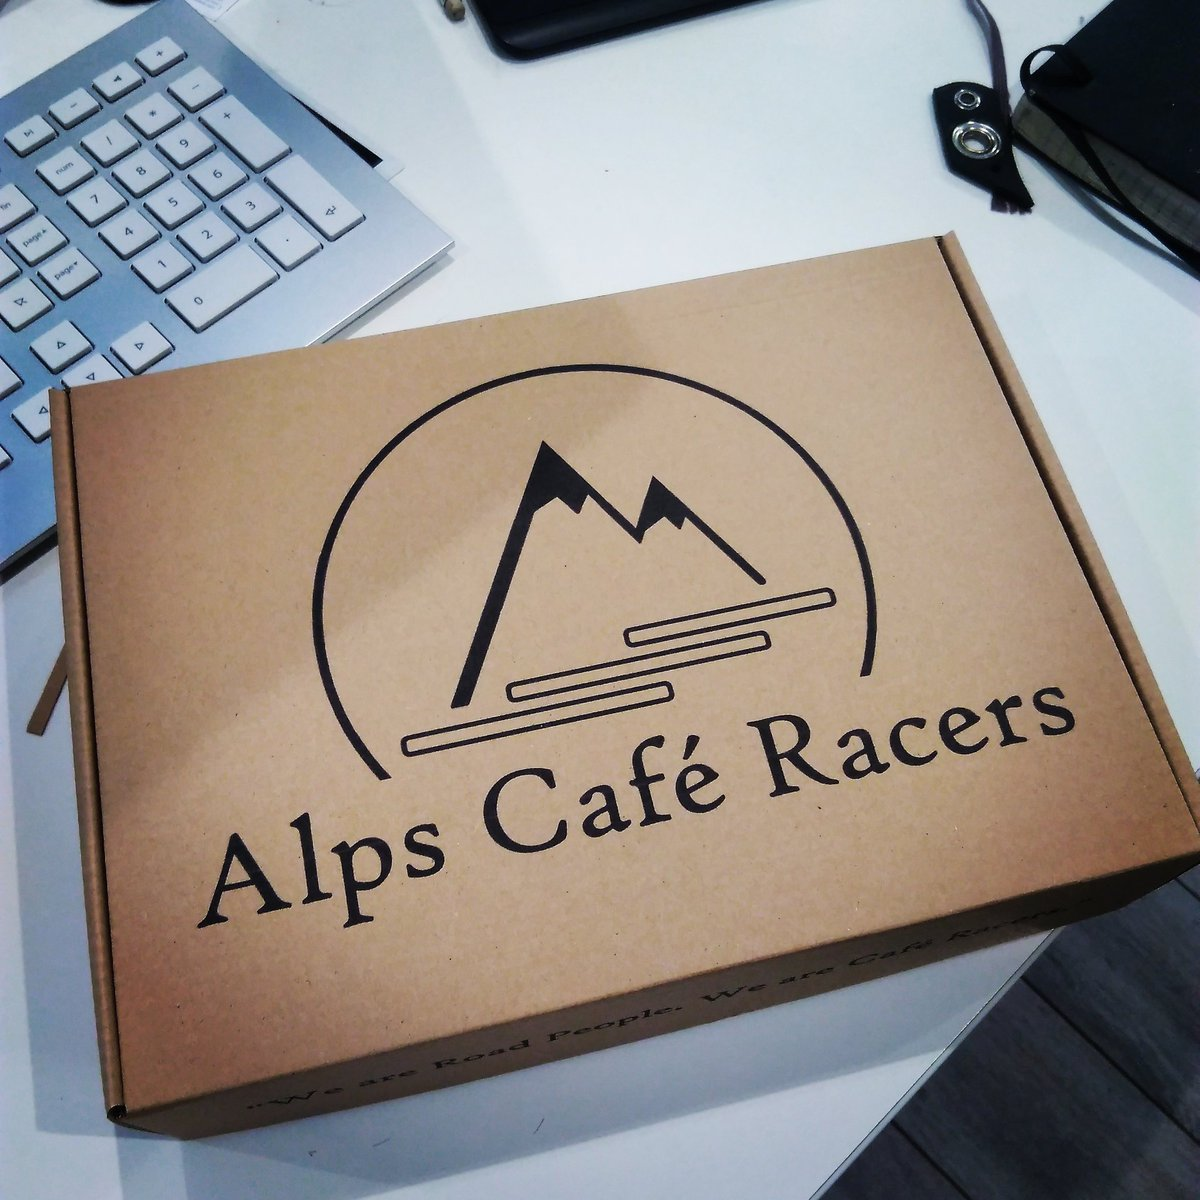 Sneak Peek at #alpscaferacer packaging for our #CafeRacerMini #customparts.   #petrolhead #carlifestyle  #vintagecars  #oldtimer #mini #minicooper  #britishcars #classicmini #austinmini #vintage #builtnotboughtpic.twitter.com/0UpusnB4Nk